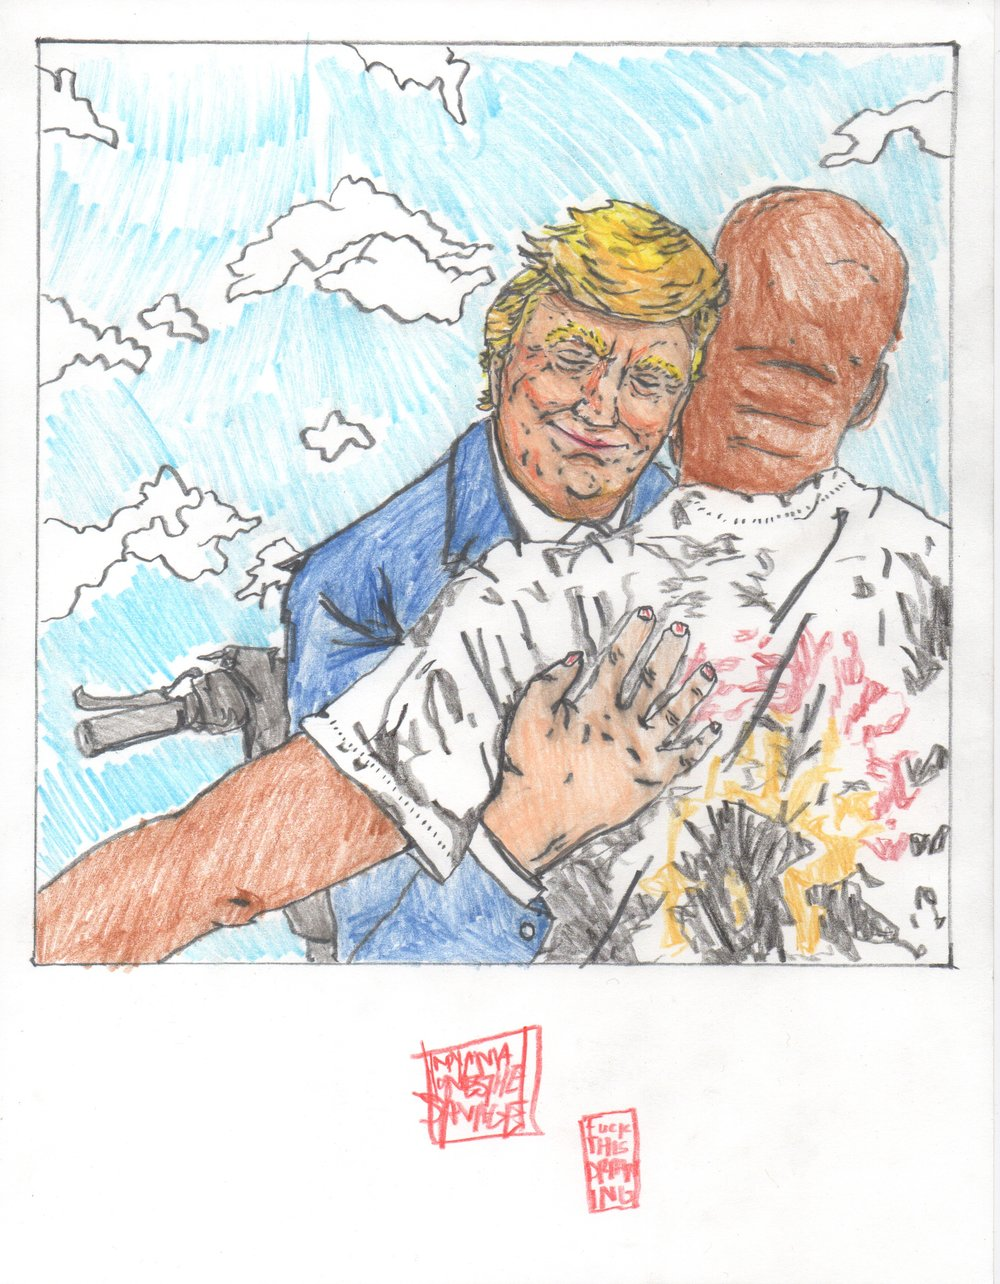 Jones the Savage | Kanye, Trump, Bound II 300px.jpeg